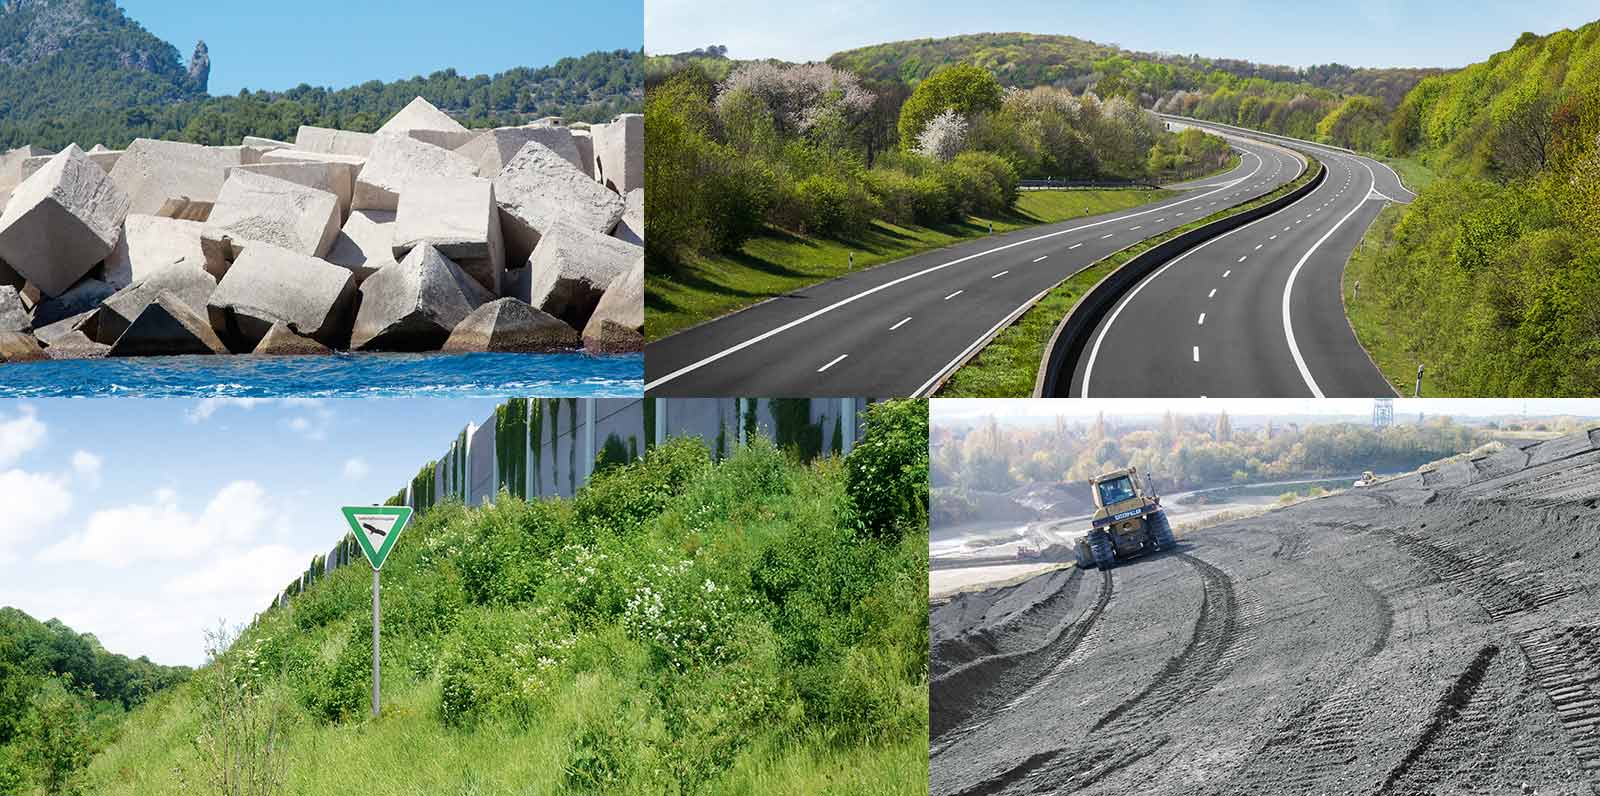 Fields of application for incinerator bottom ash include roads, earthworks, landfills, asphalt and concrete